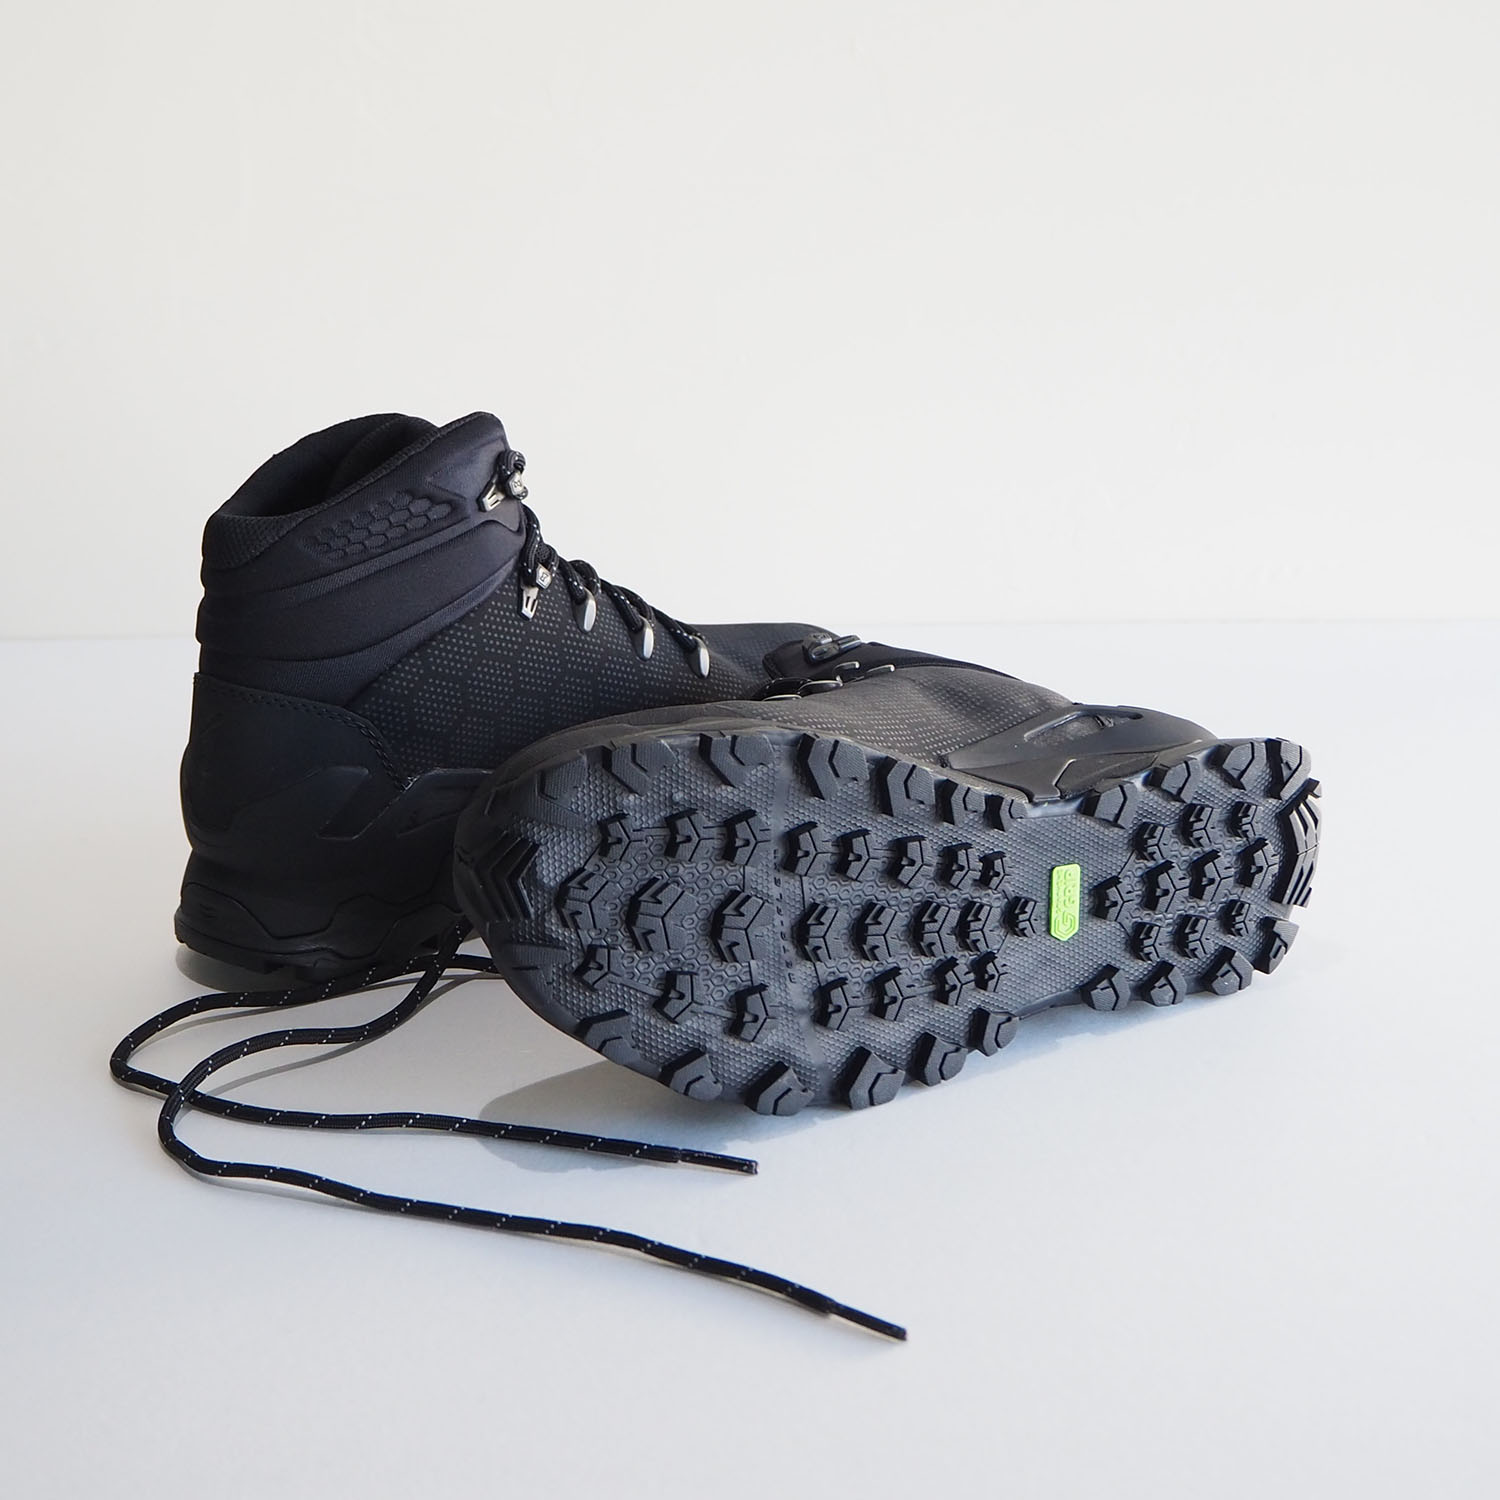 inov8 ROCLITE PRO G400 GTX MEN'S-BLACK G Series イノヴェイト ロックライトプロ 400 GTX